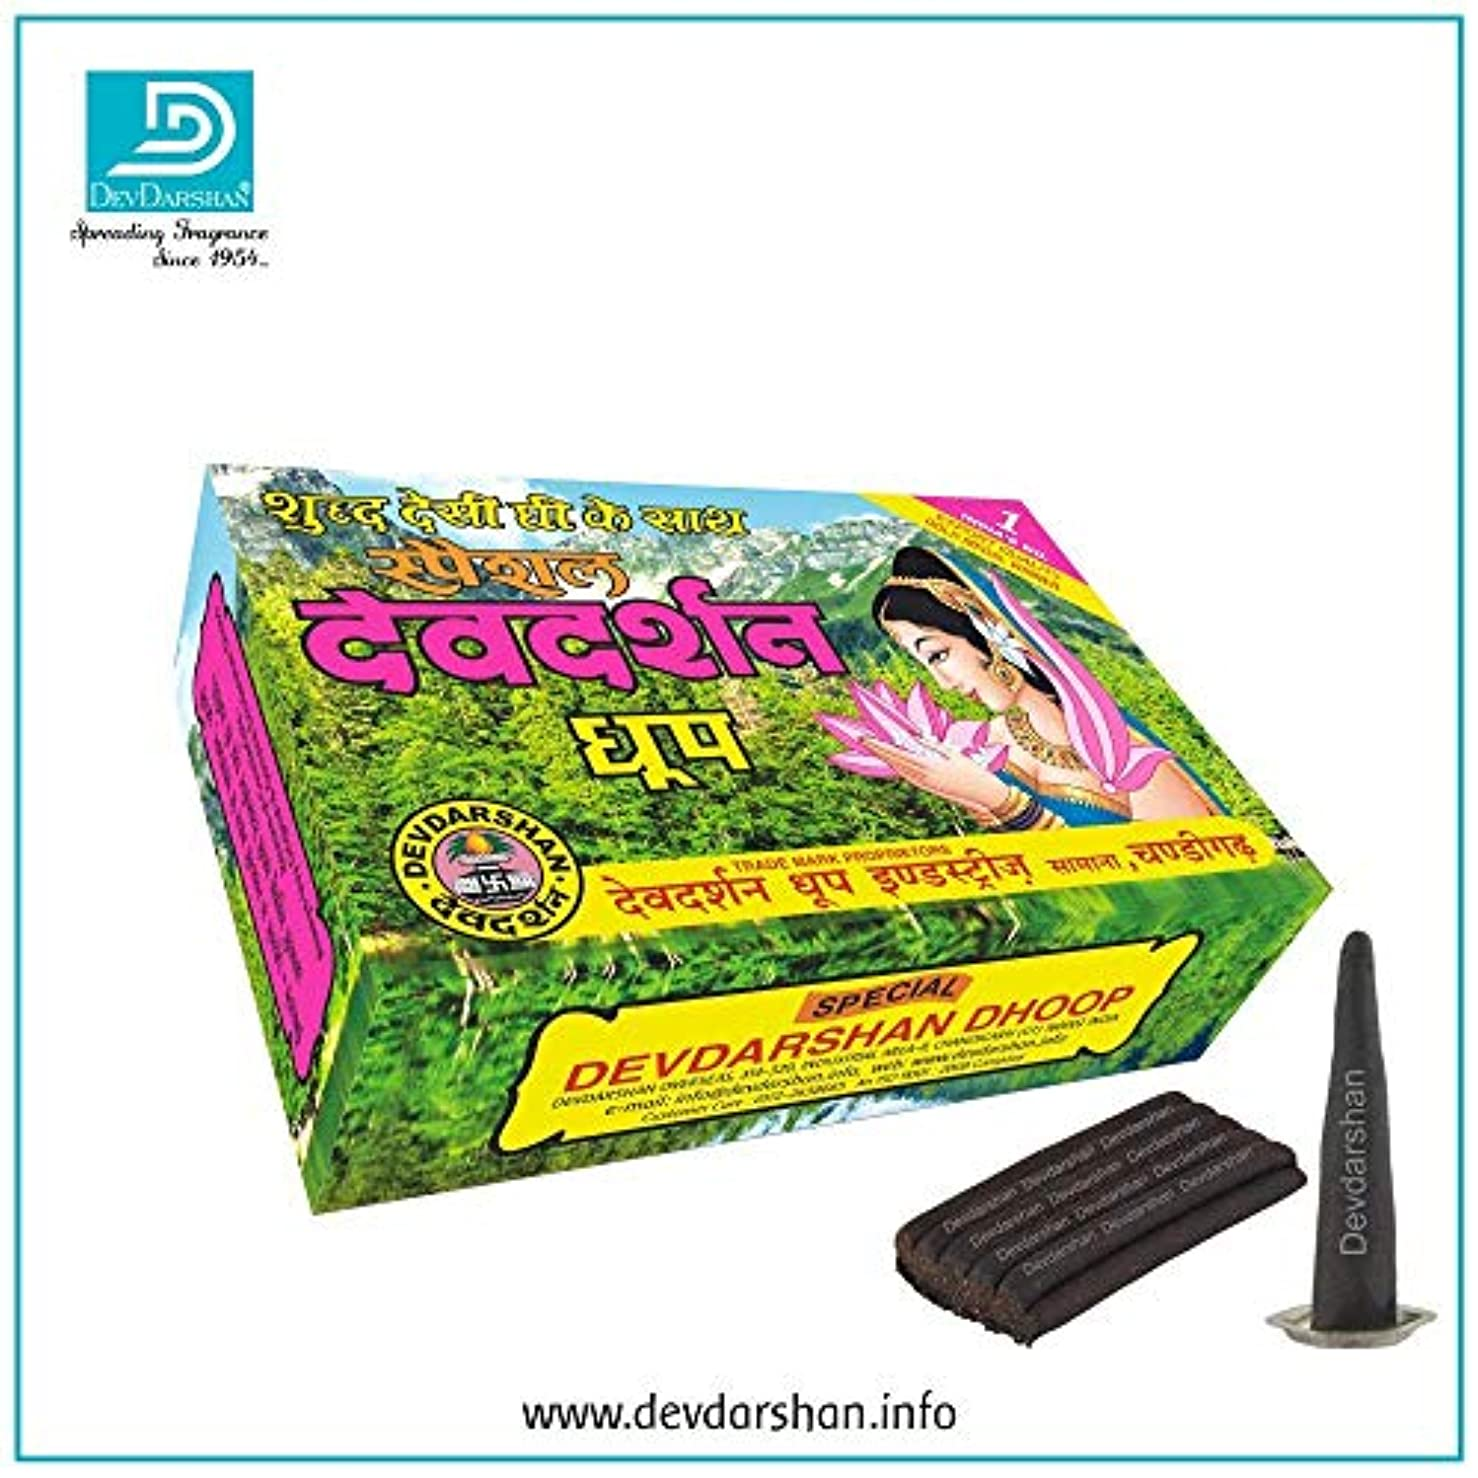 シットコム圧縮する飽和するDevdarshan Special Dhoop Large, 50g in Each Unit (Pack of 12 Units)